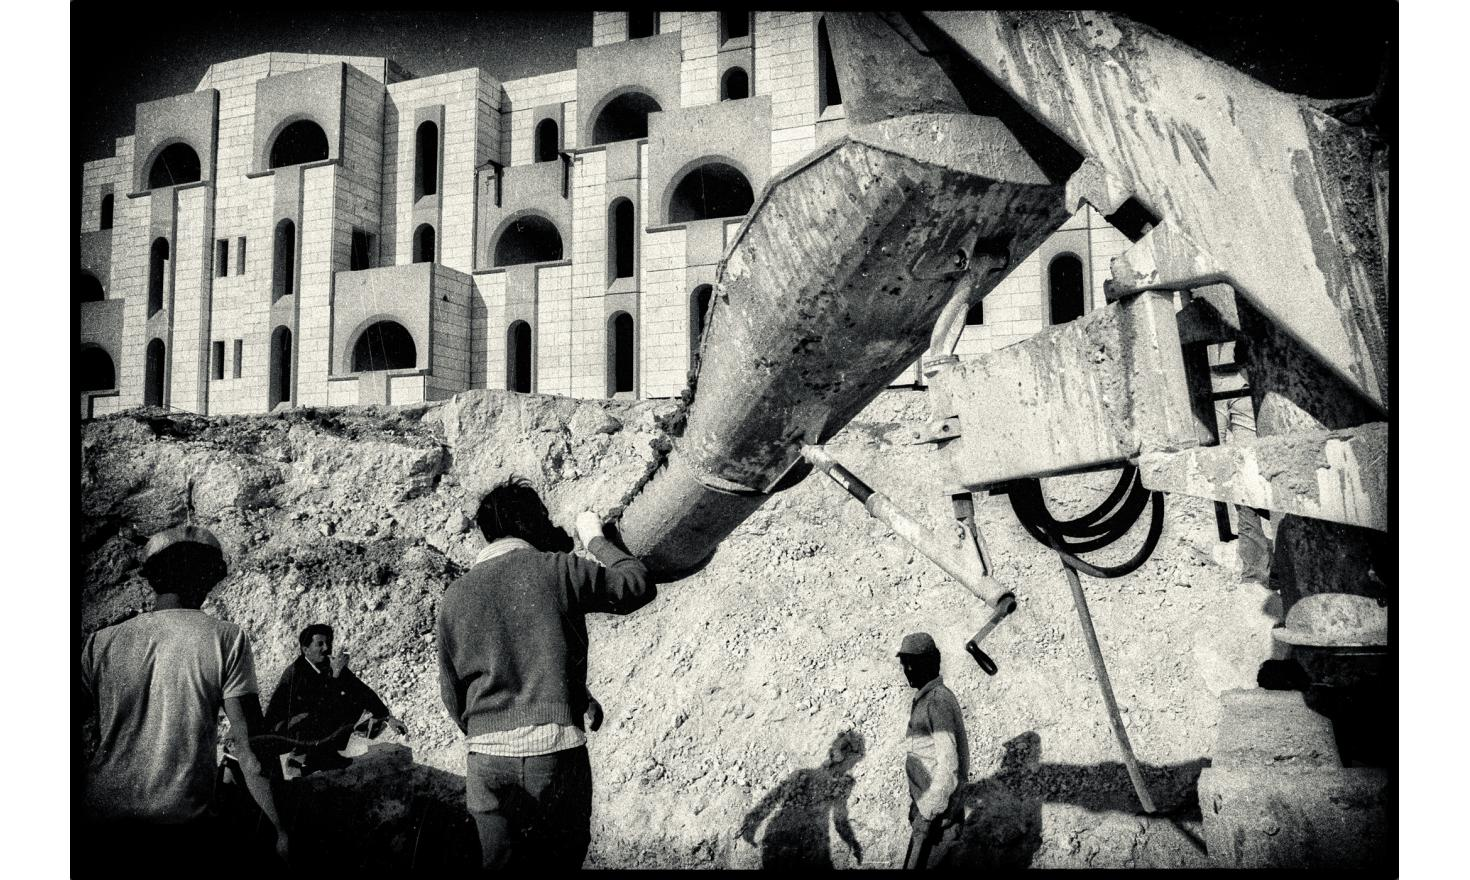 Palestinian working at the construction site of the colony of Ma'aleh Adumin. Occupied West bank. April 29, 1982